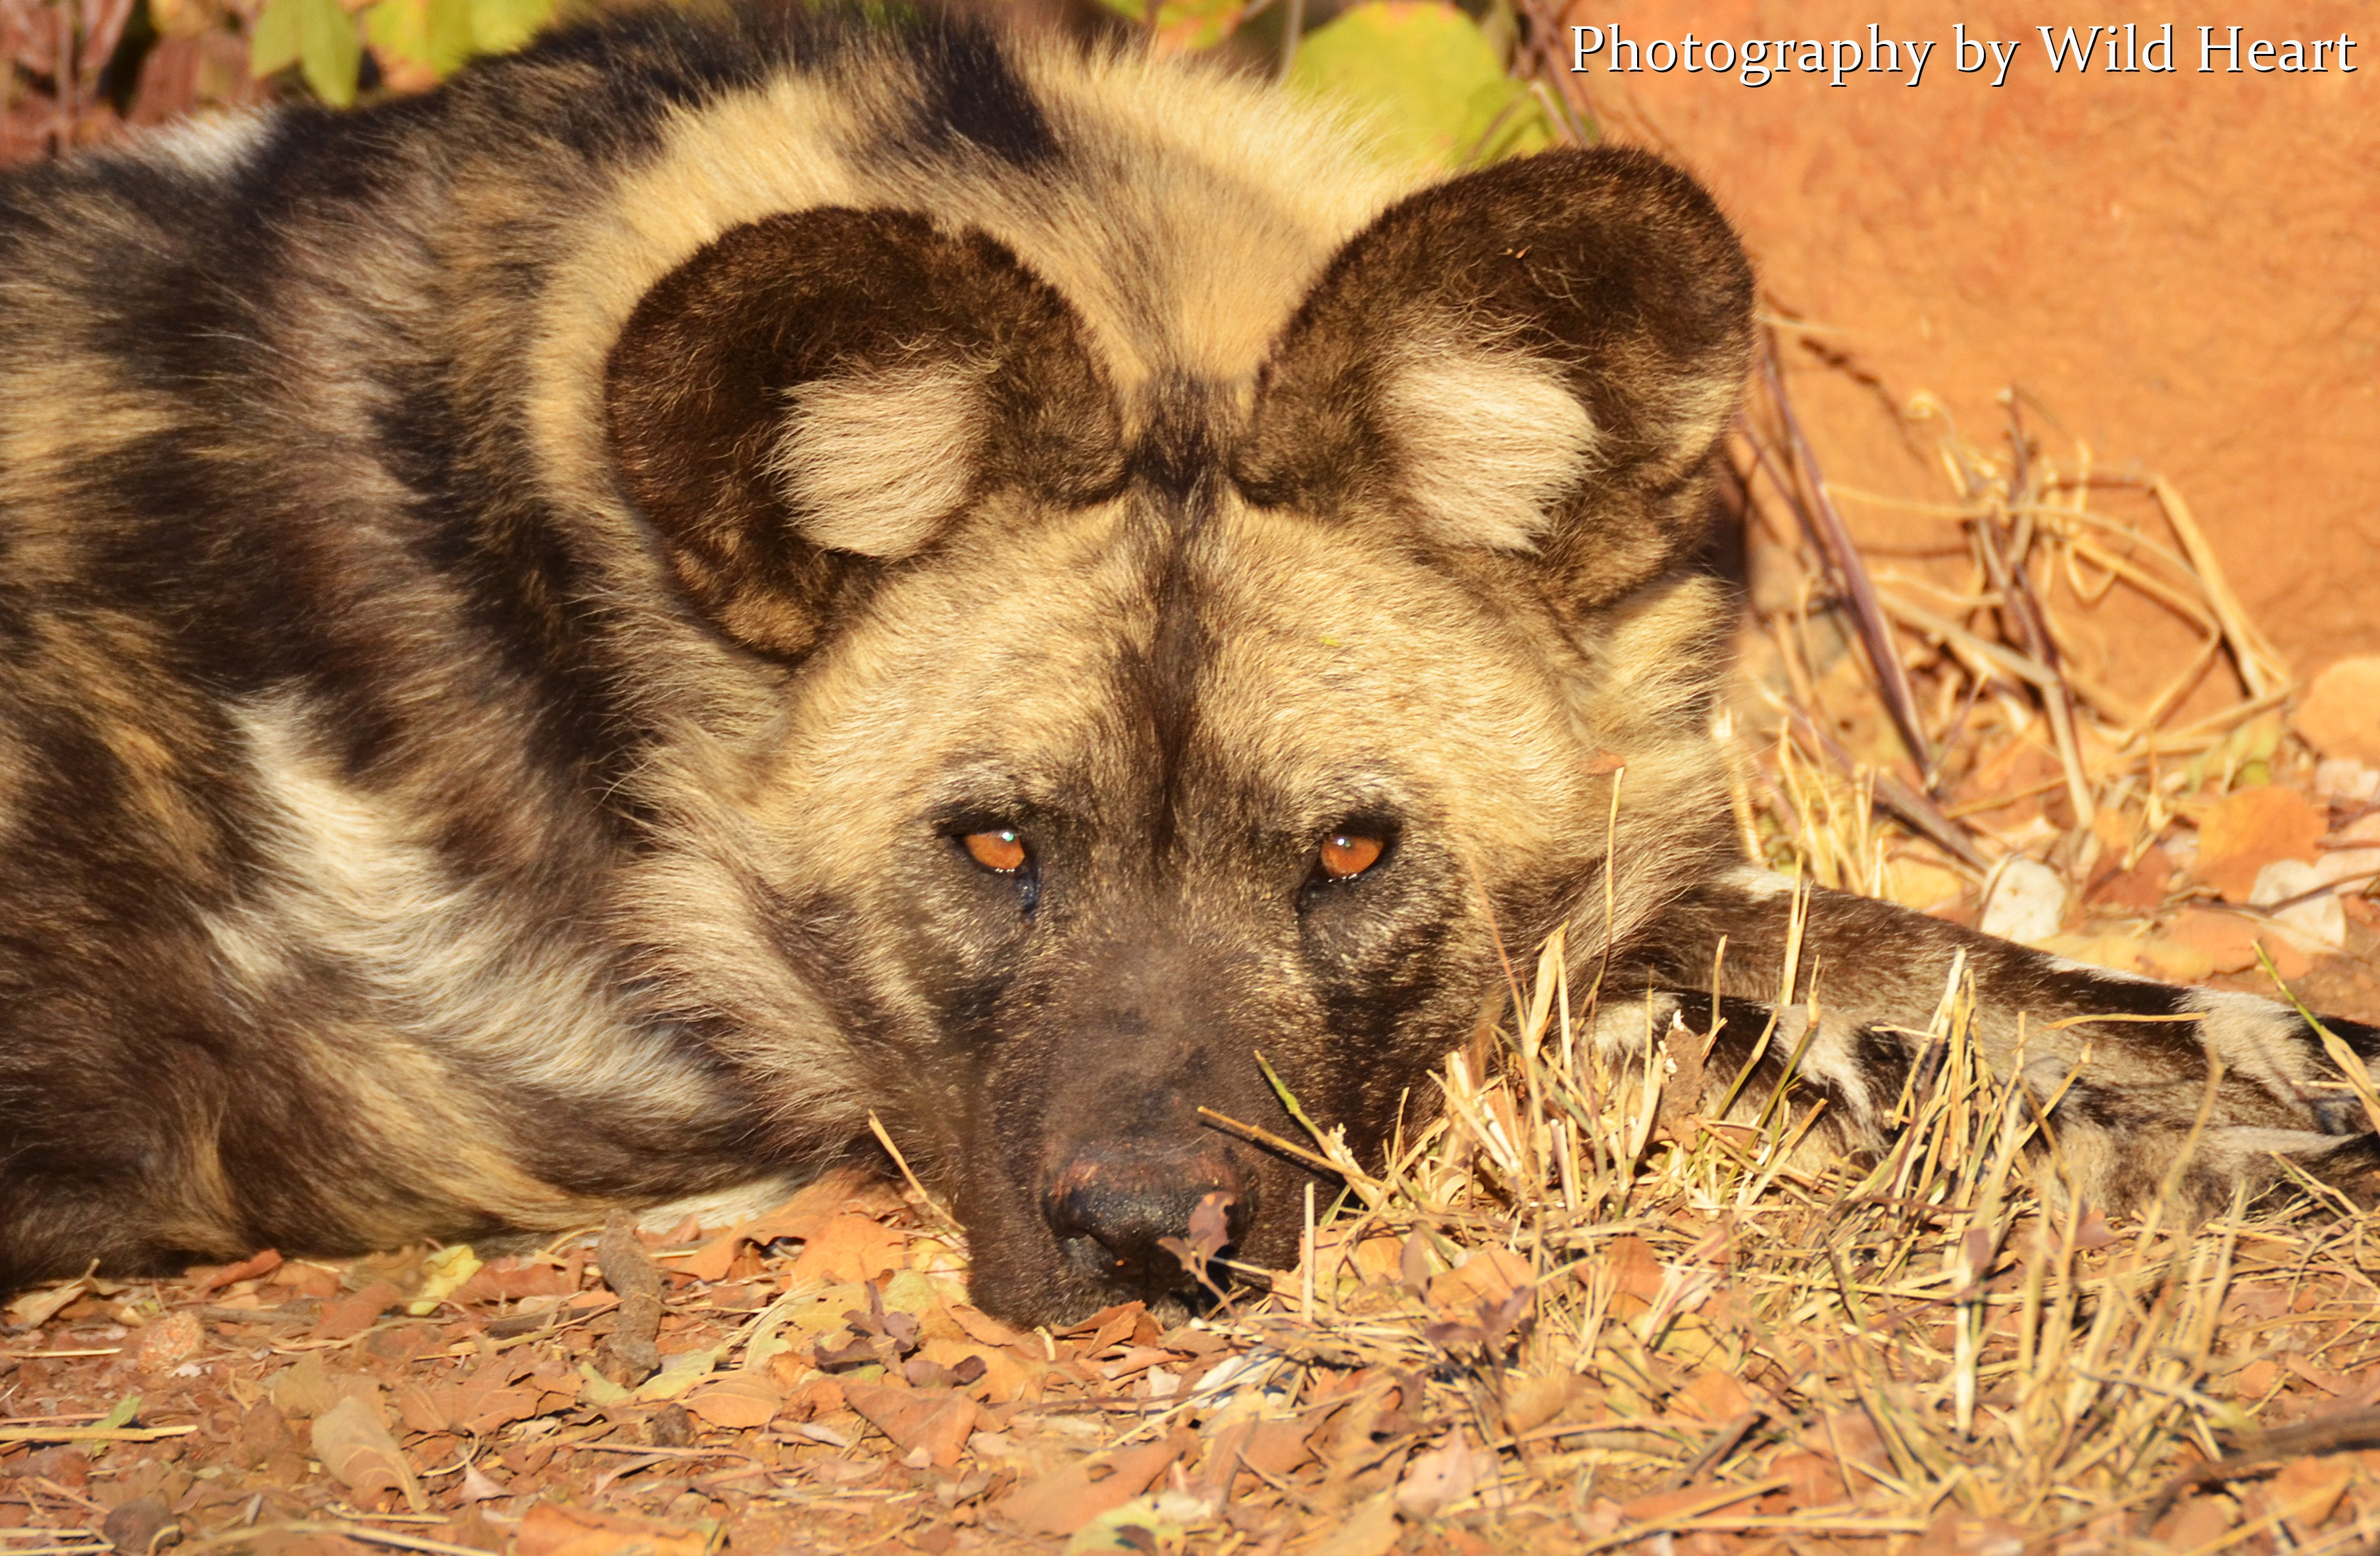 Some san hunters will smear african wild dog bodily fluids on their feet before a hunt believing that doing so will gift them with the animals boldness